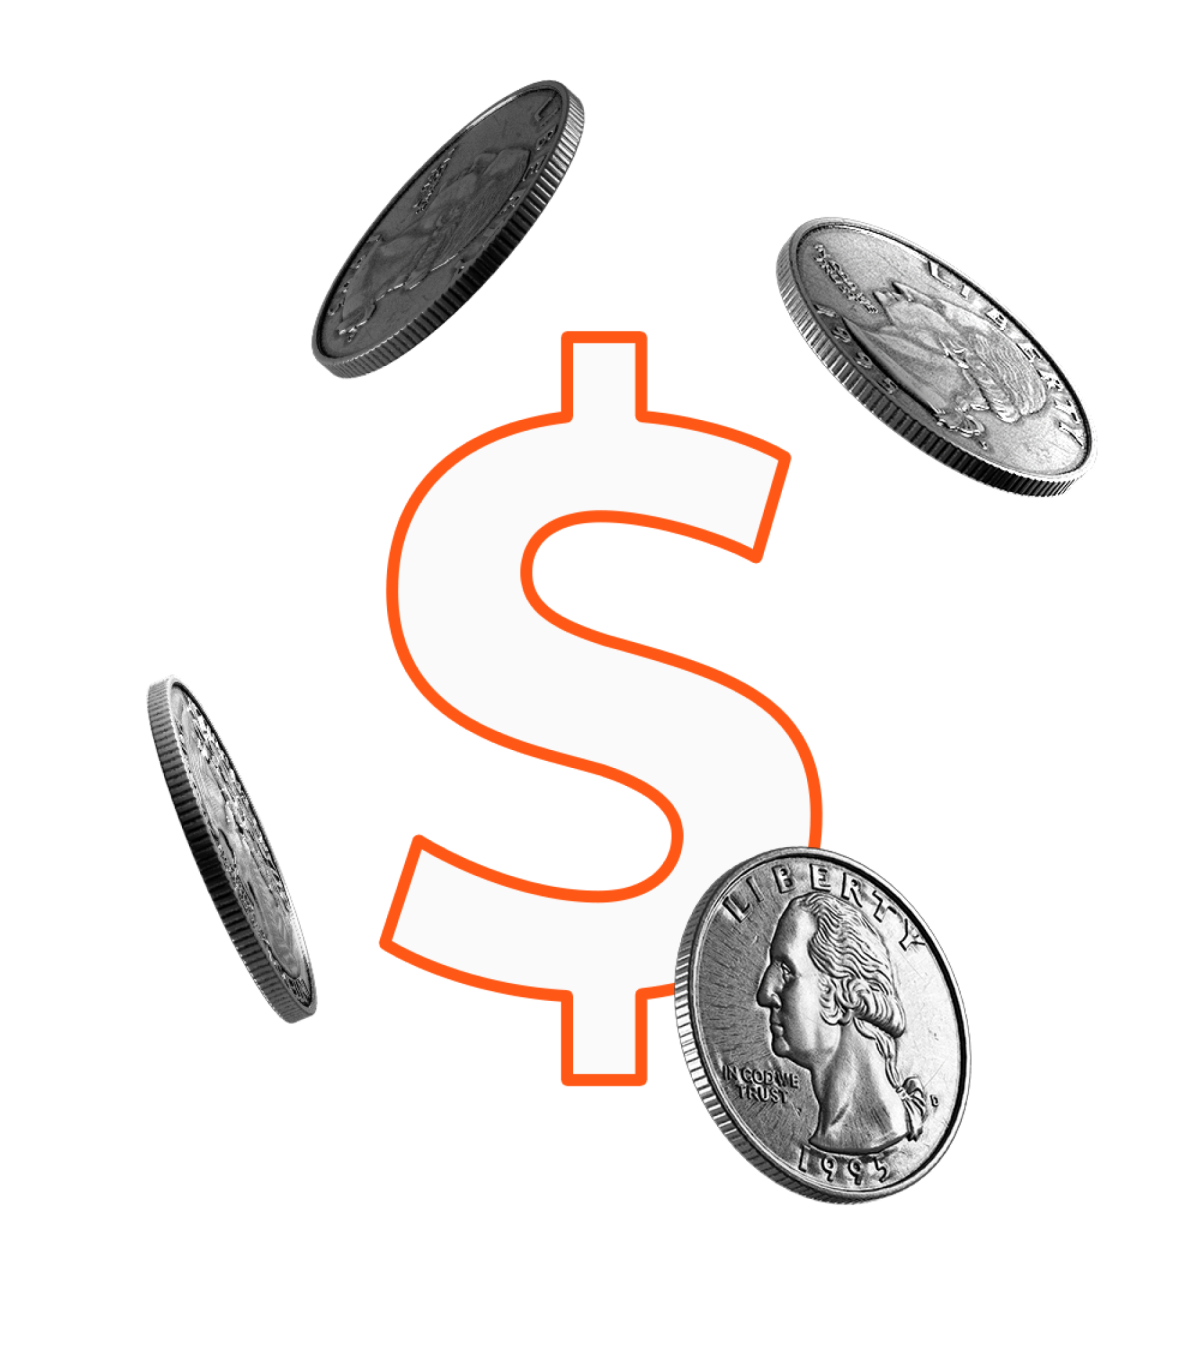 Quarters falling around large orange dollar sign